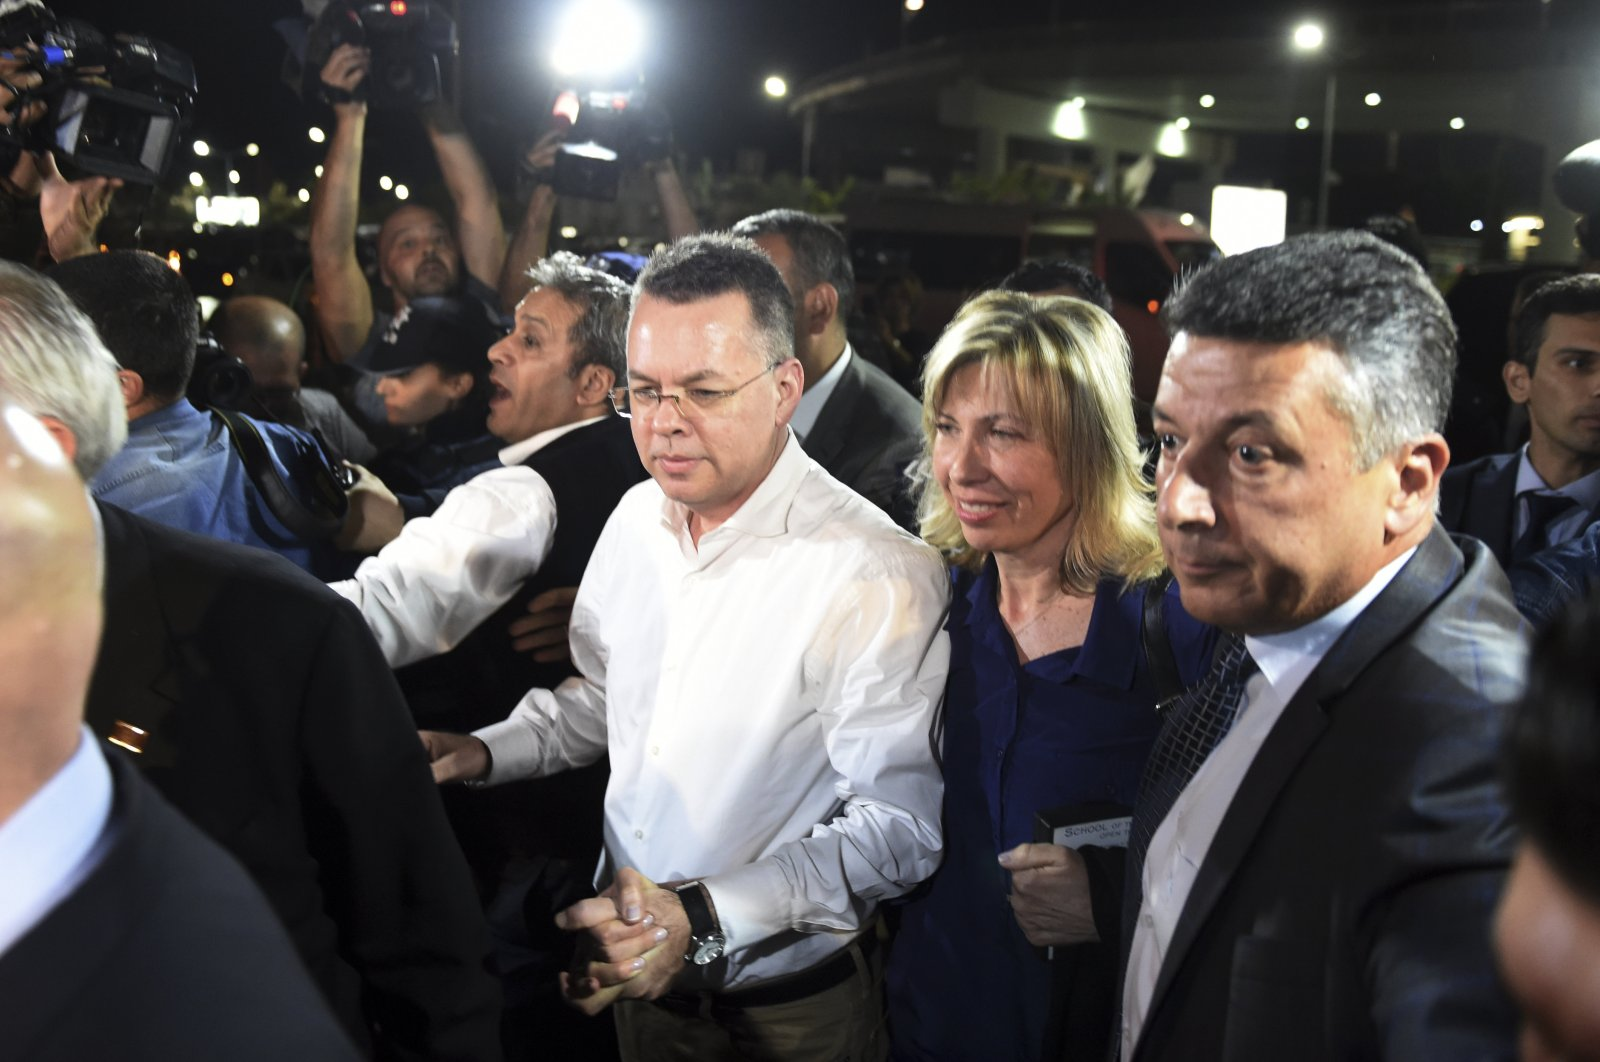 Andrew Brunson (C) arrives at the airport after his release, in Izmir, western Turkey, Oct. 12, 2018. (AP Photo)